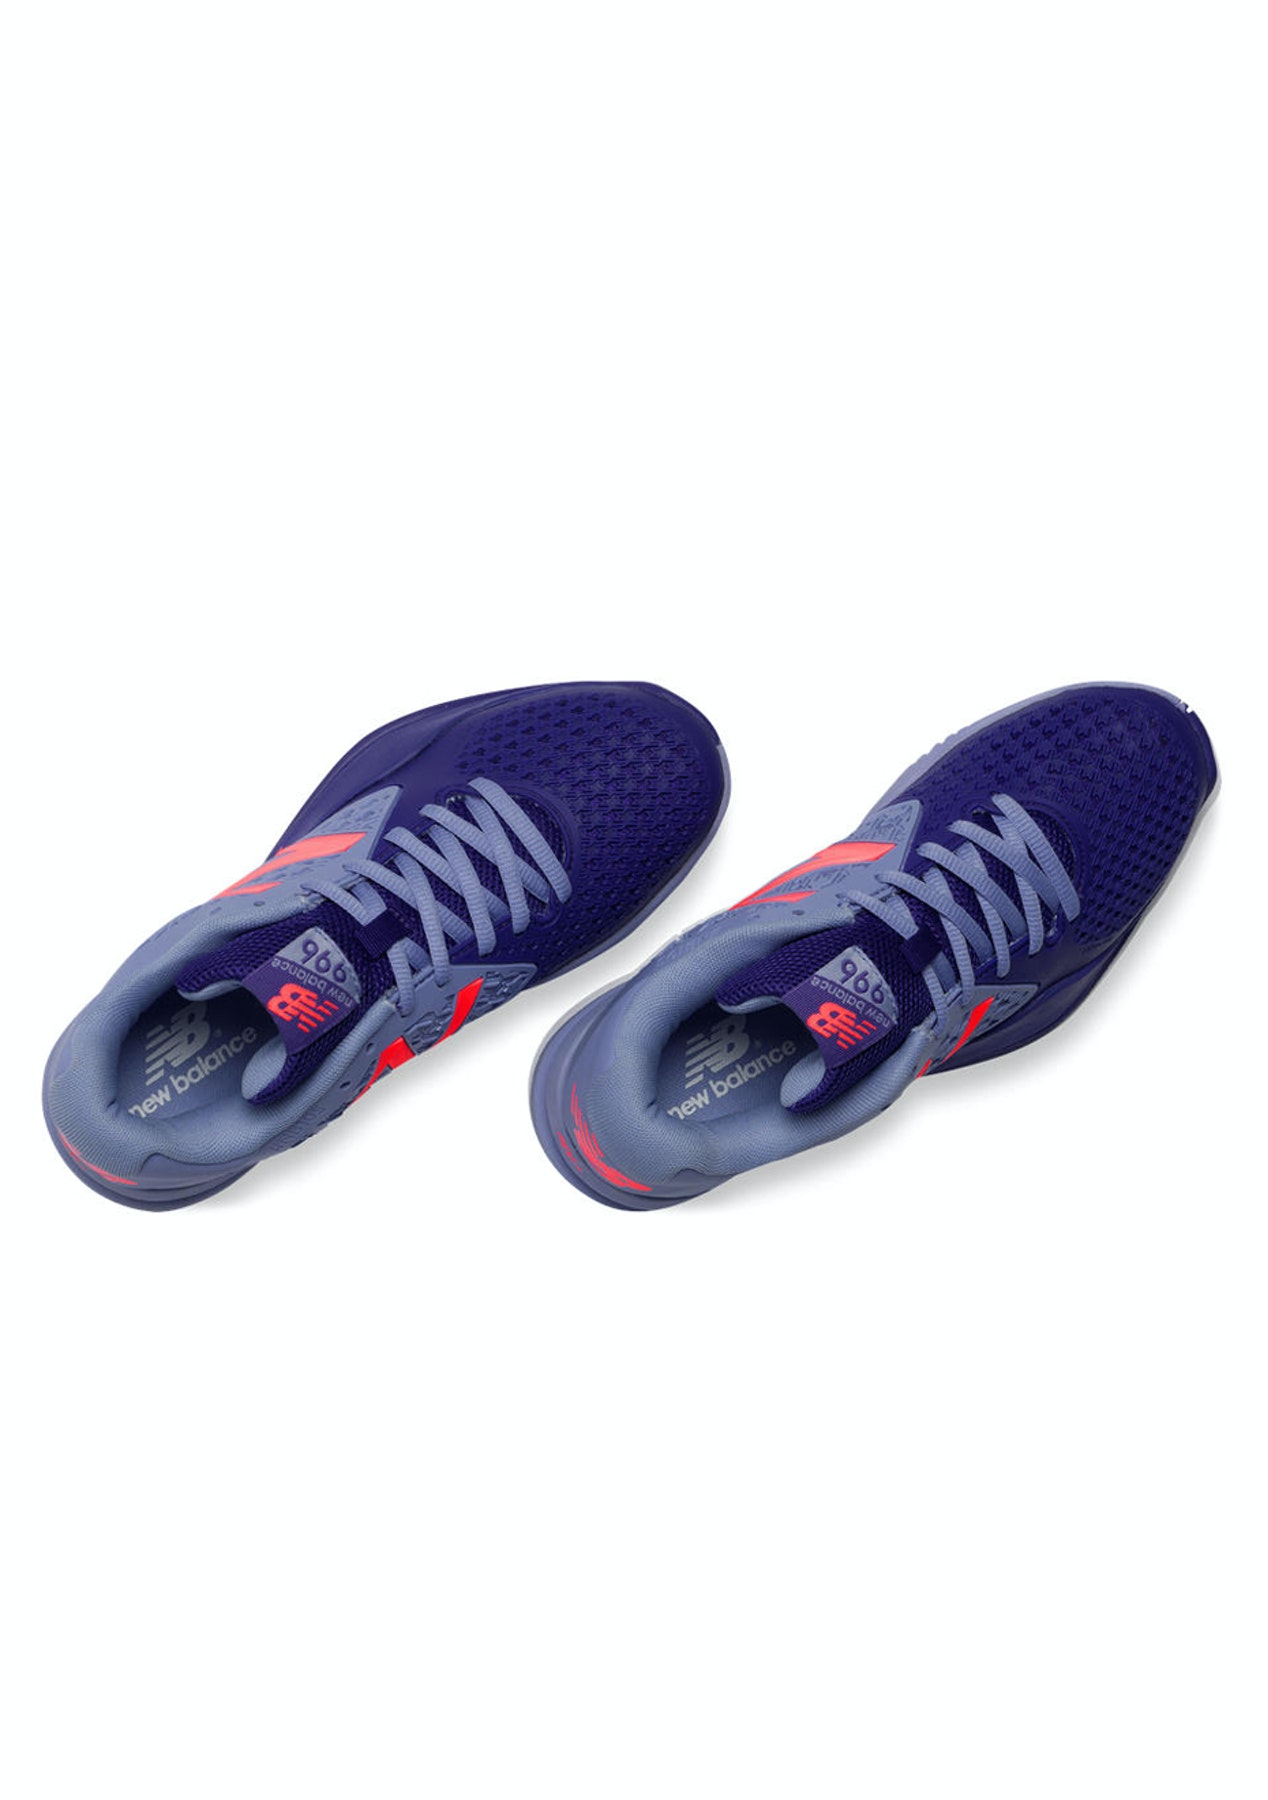 228793b48143 New Balance Womens- 996v2 - Spectral with Guava - Shoe Sell Out - Onceit